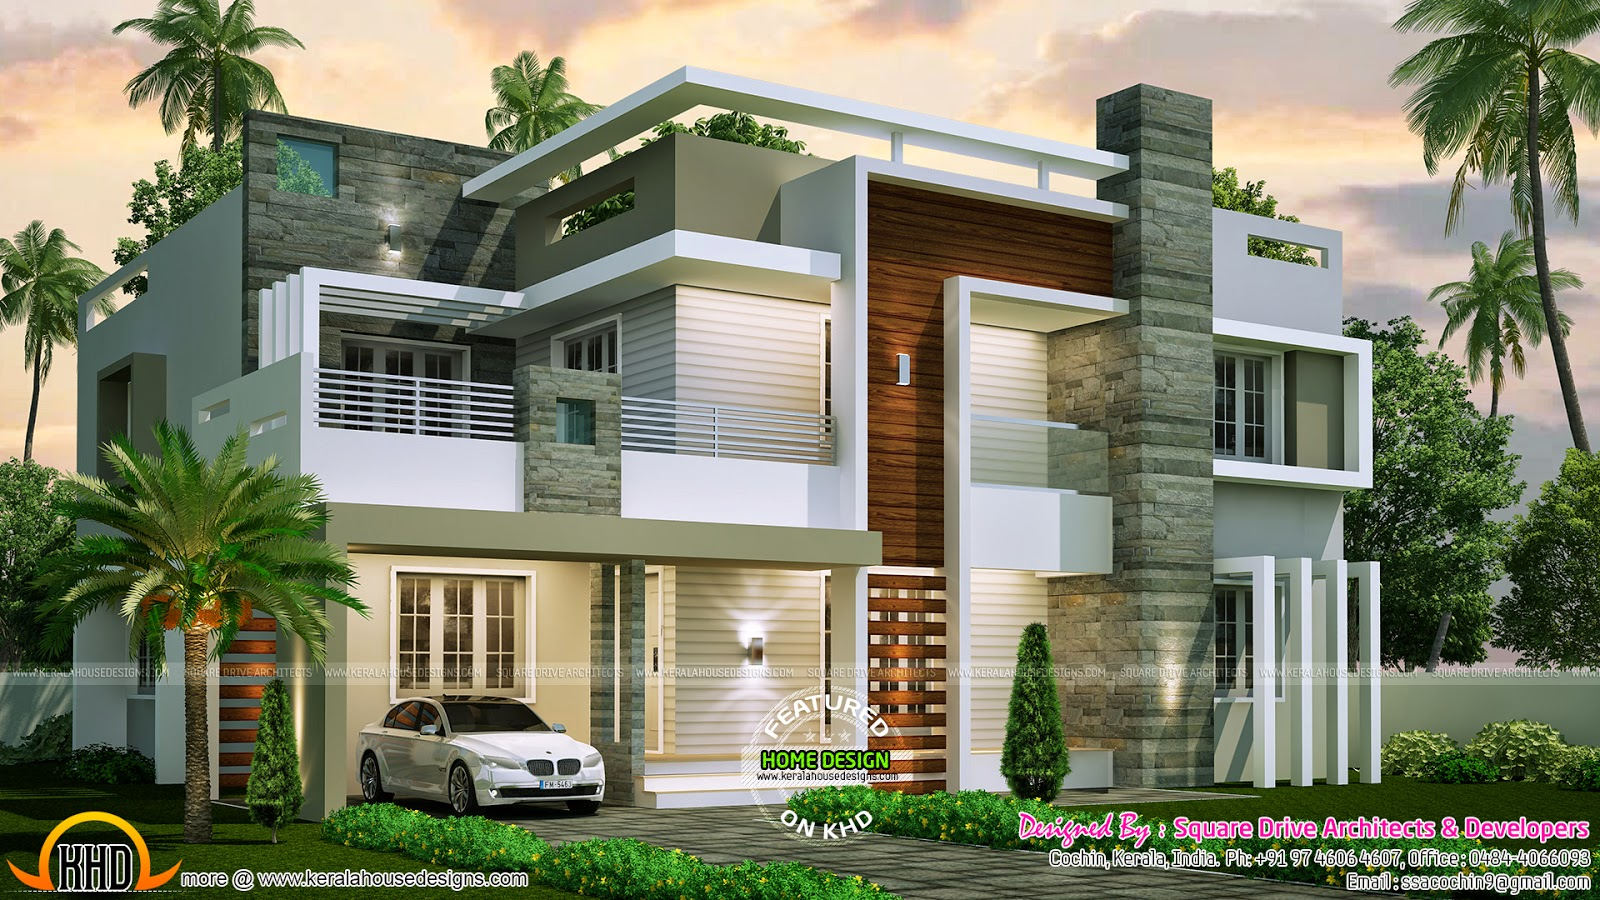 4 bedroom contemporary home design kerala home design Modern contemporary house plans for sale